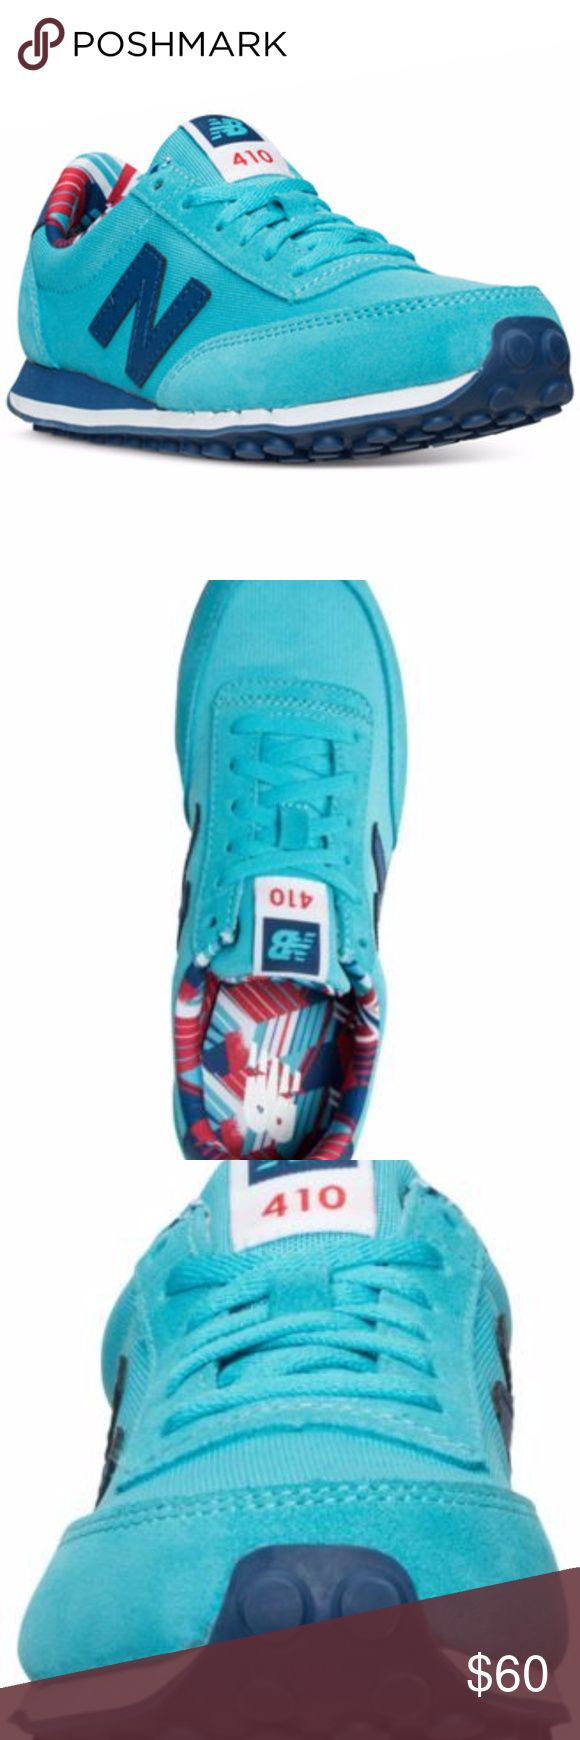 NIB New Balance Women's 410 Sneakers / Size 6 New Balance Women's 410 Hawaiian Casual Sneakers from Finish Line / Color TEAL/ATLANTIC / US Women Size 6 New Balance Shoes Sneakers